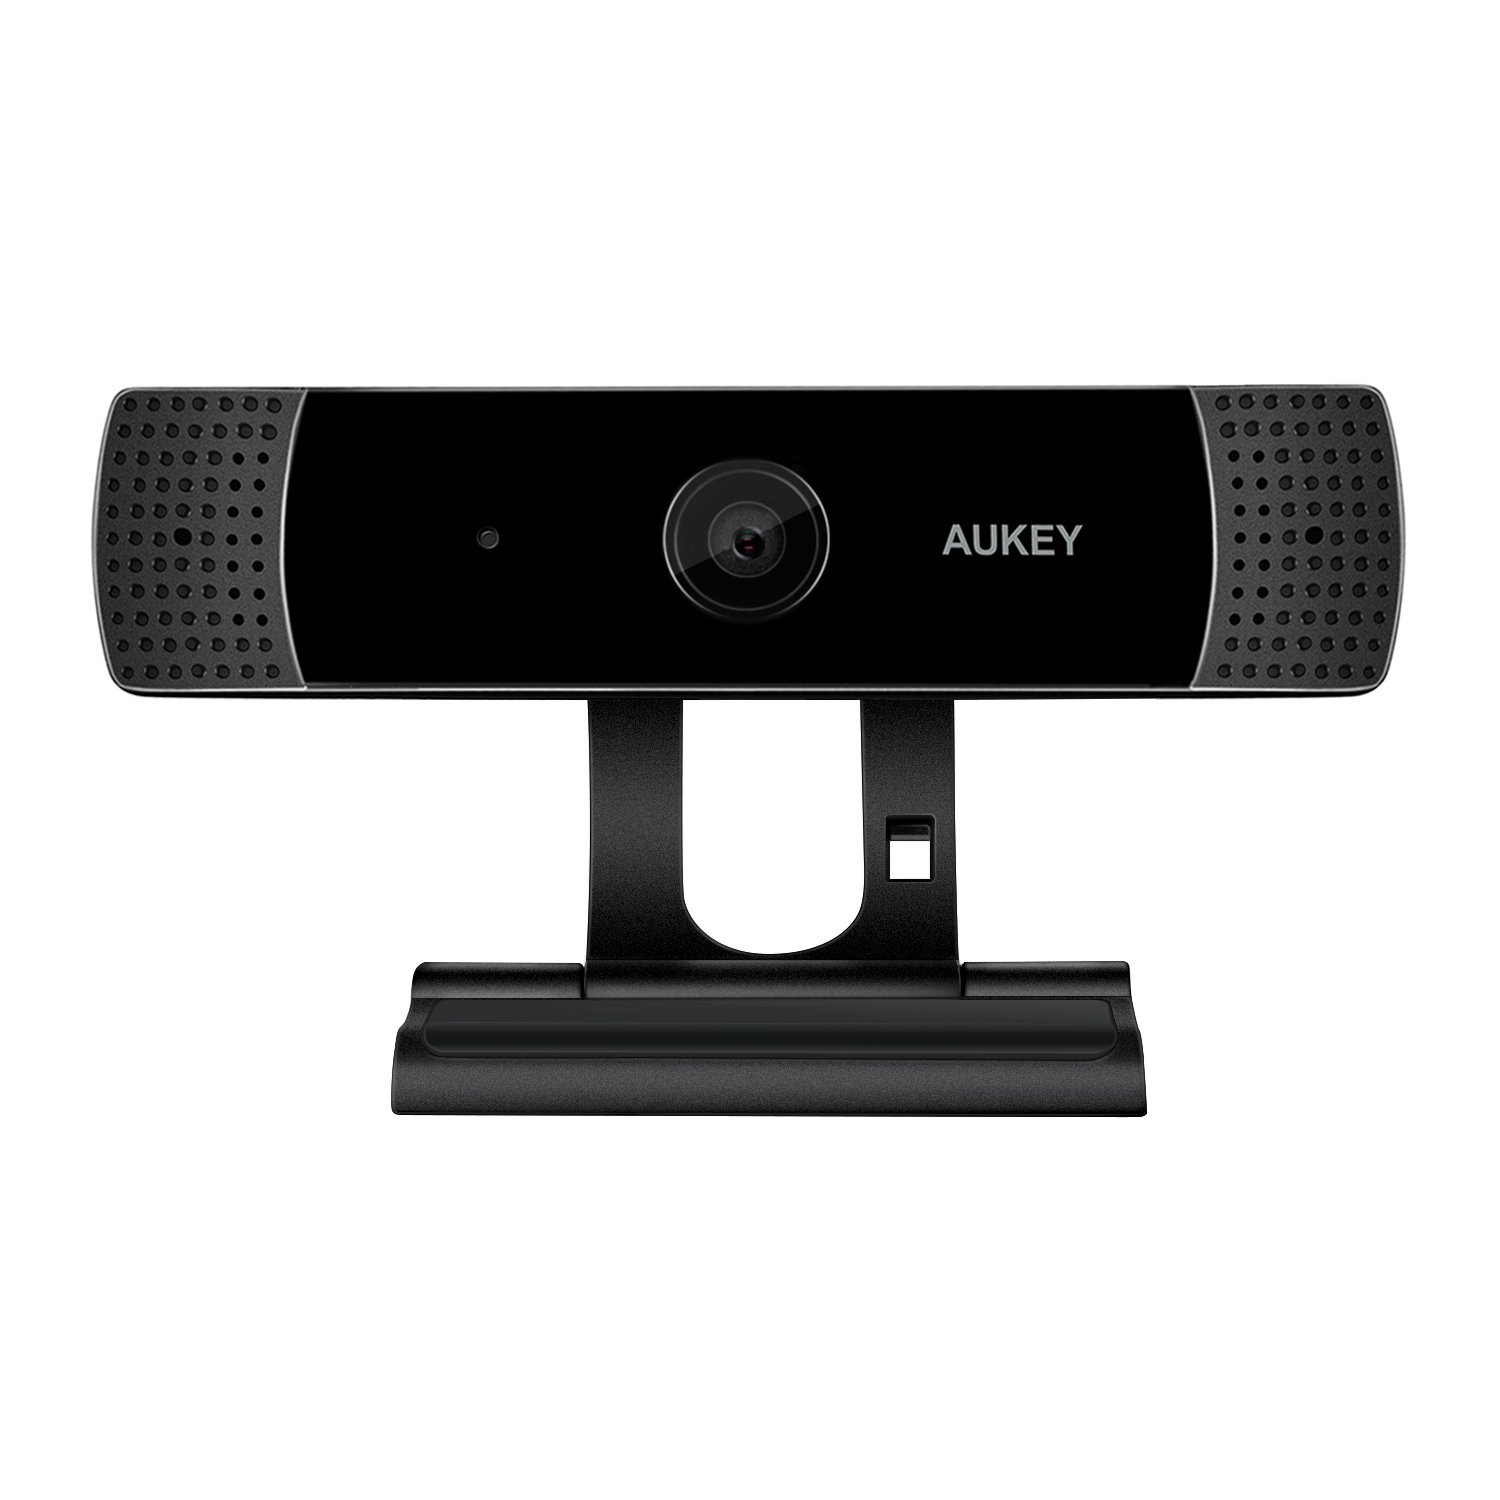 AUKEY FHD Webcam, 1080p Live Streaming Camera with Stereo Microphone, Desktop or Laptop USB Webcam for Widescreen Video Calling and Recording